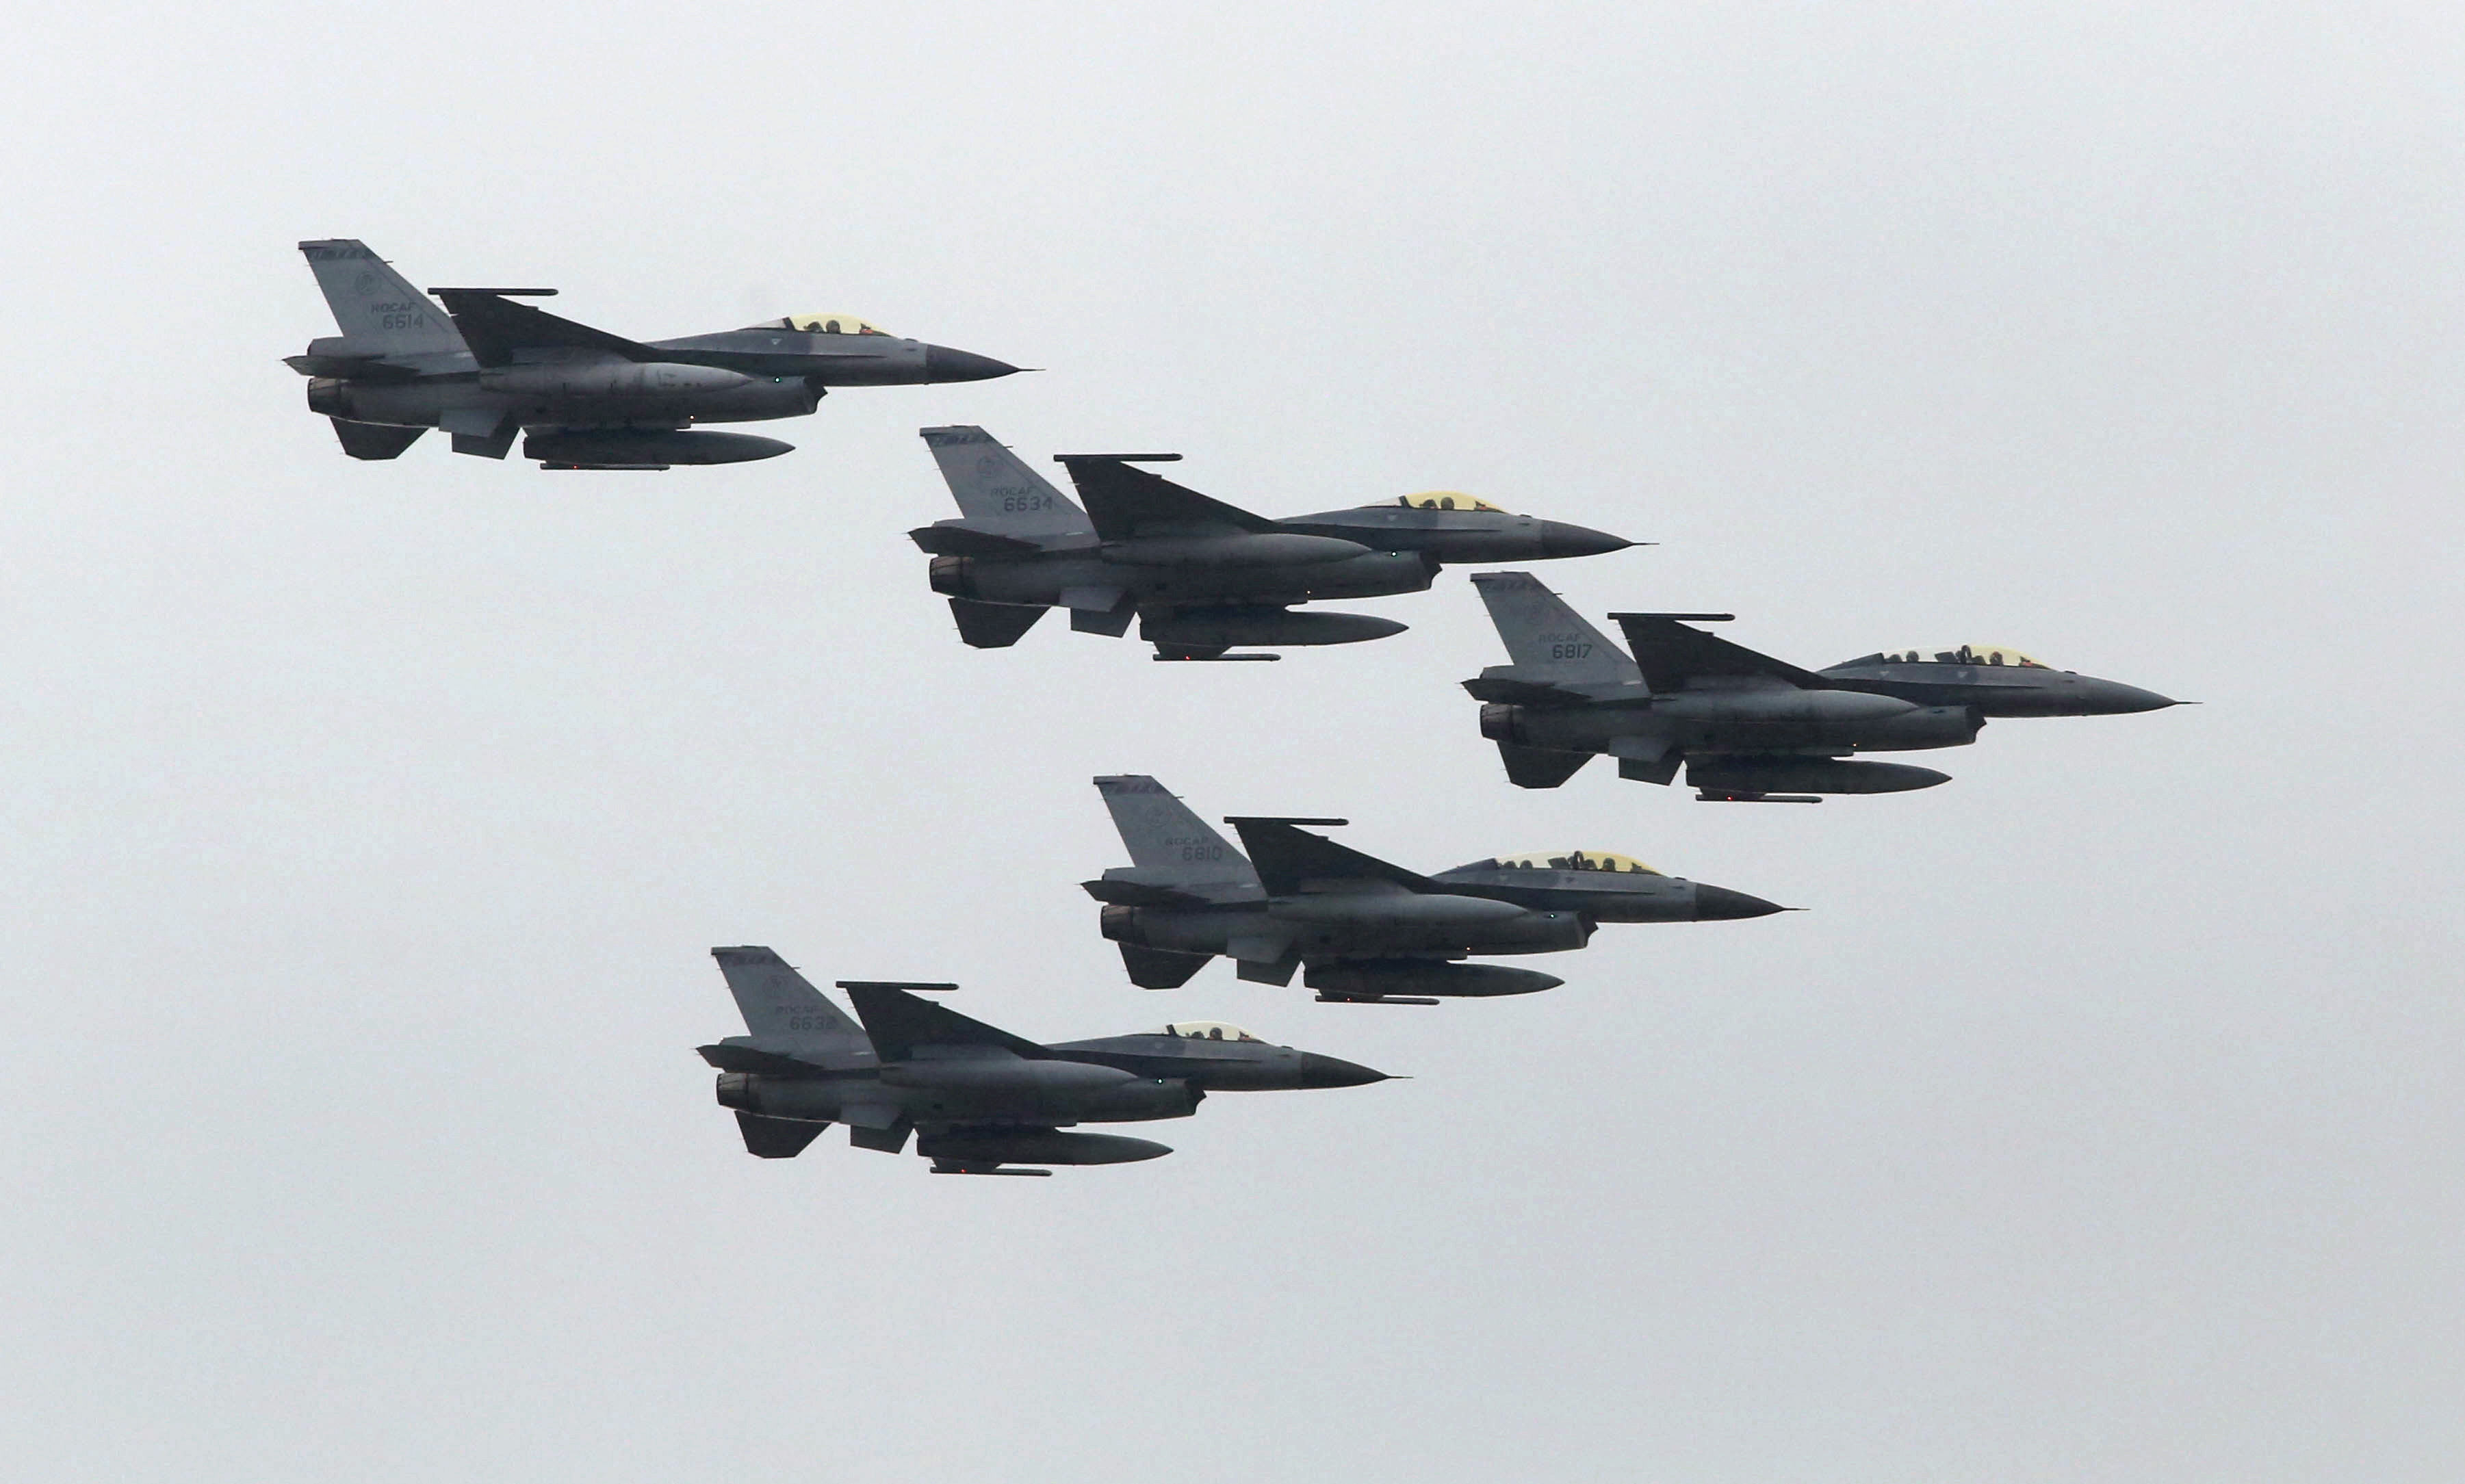 Taiwan Air Force's F-16 fighter jets fly during the annual Han Kuang military exercise at an army base in Hsinchu, northern Taiwan, July 4, 2015. REUTERS/Patrick Lin